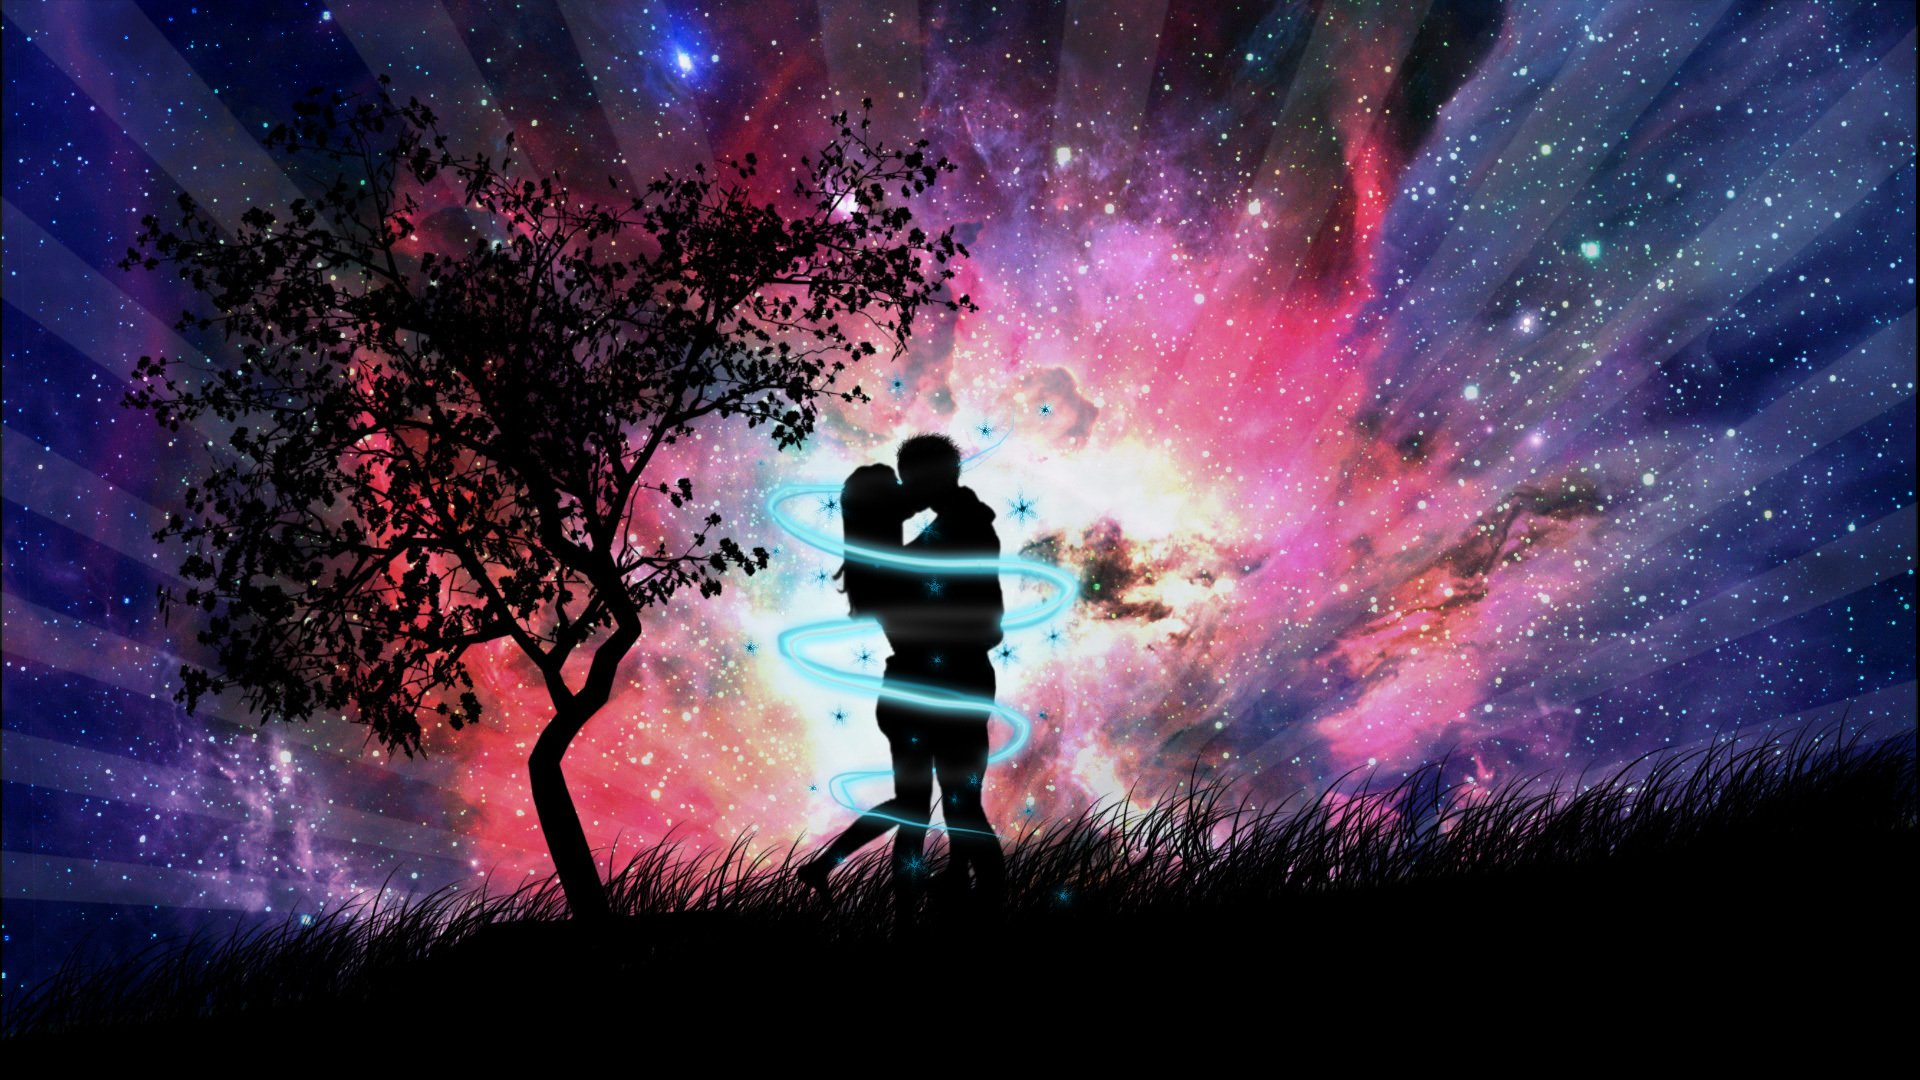 Artistic - Love  Kiss Romantic Wallpaper